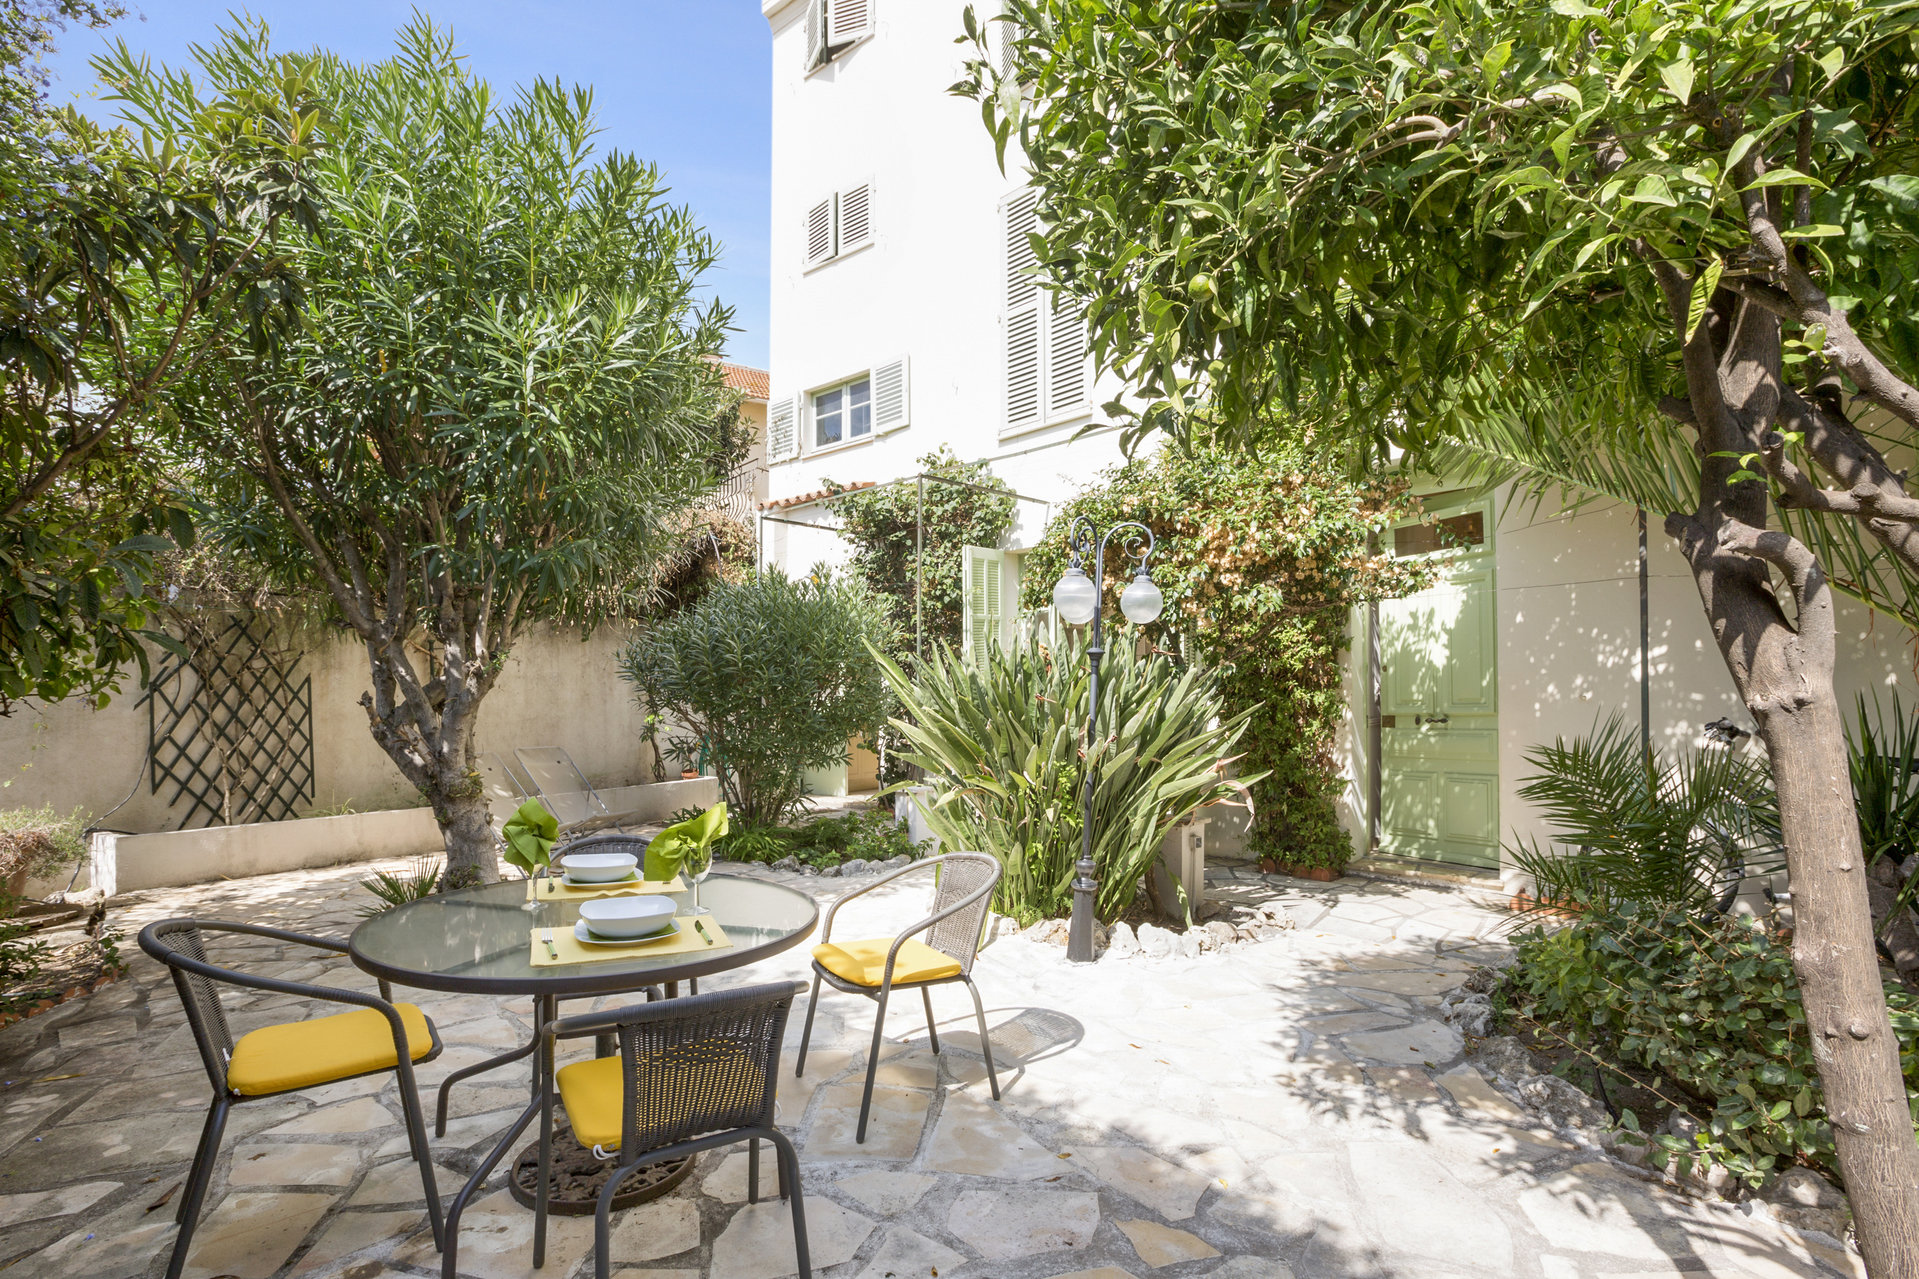 3 bed Apartment/villa with garden terrace in the heart of the Suquet - Cannes